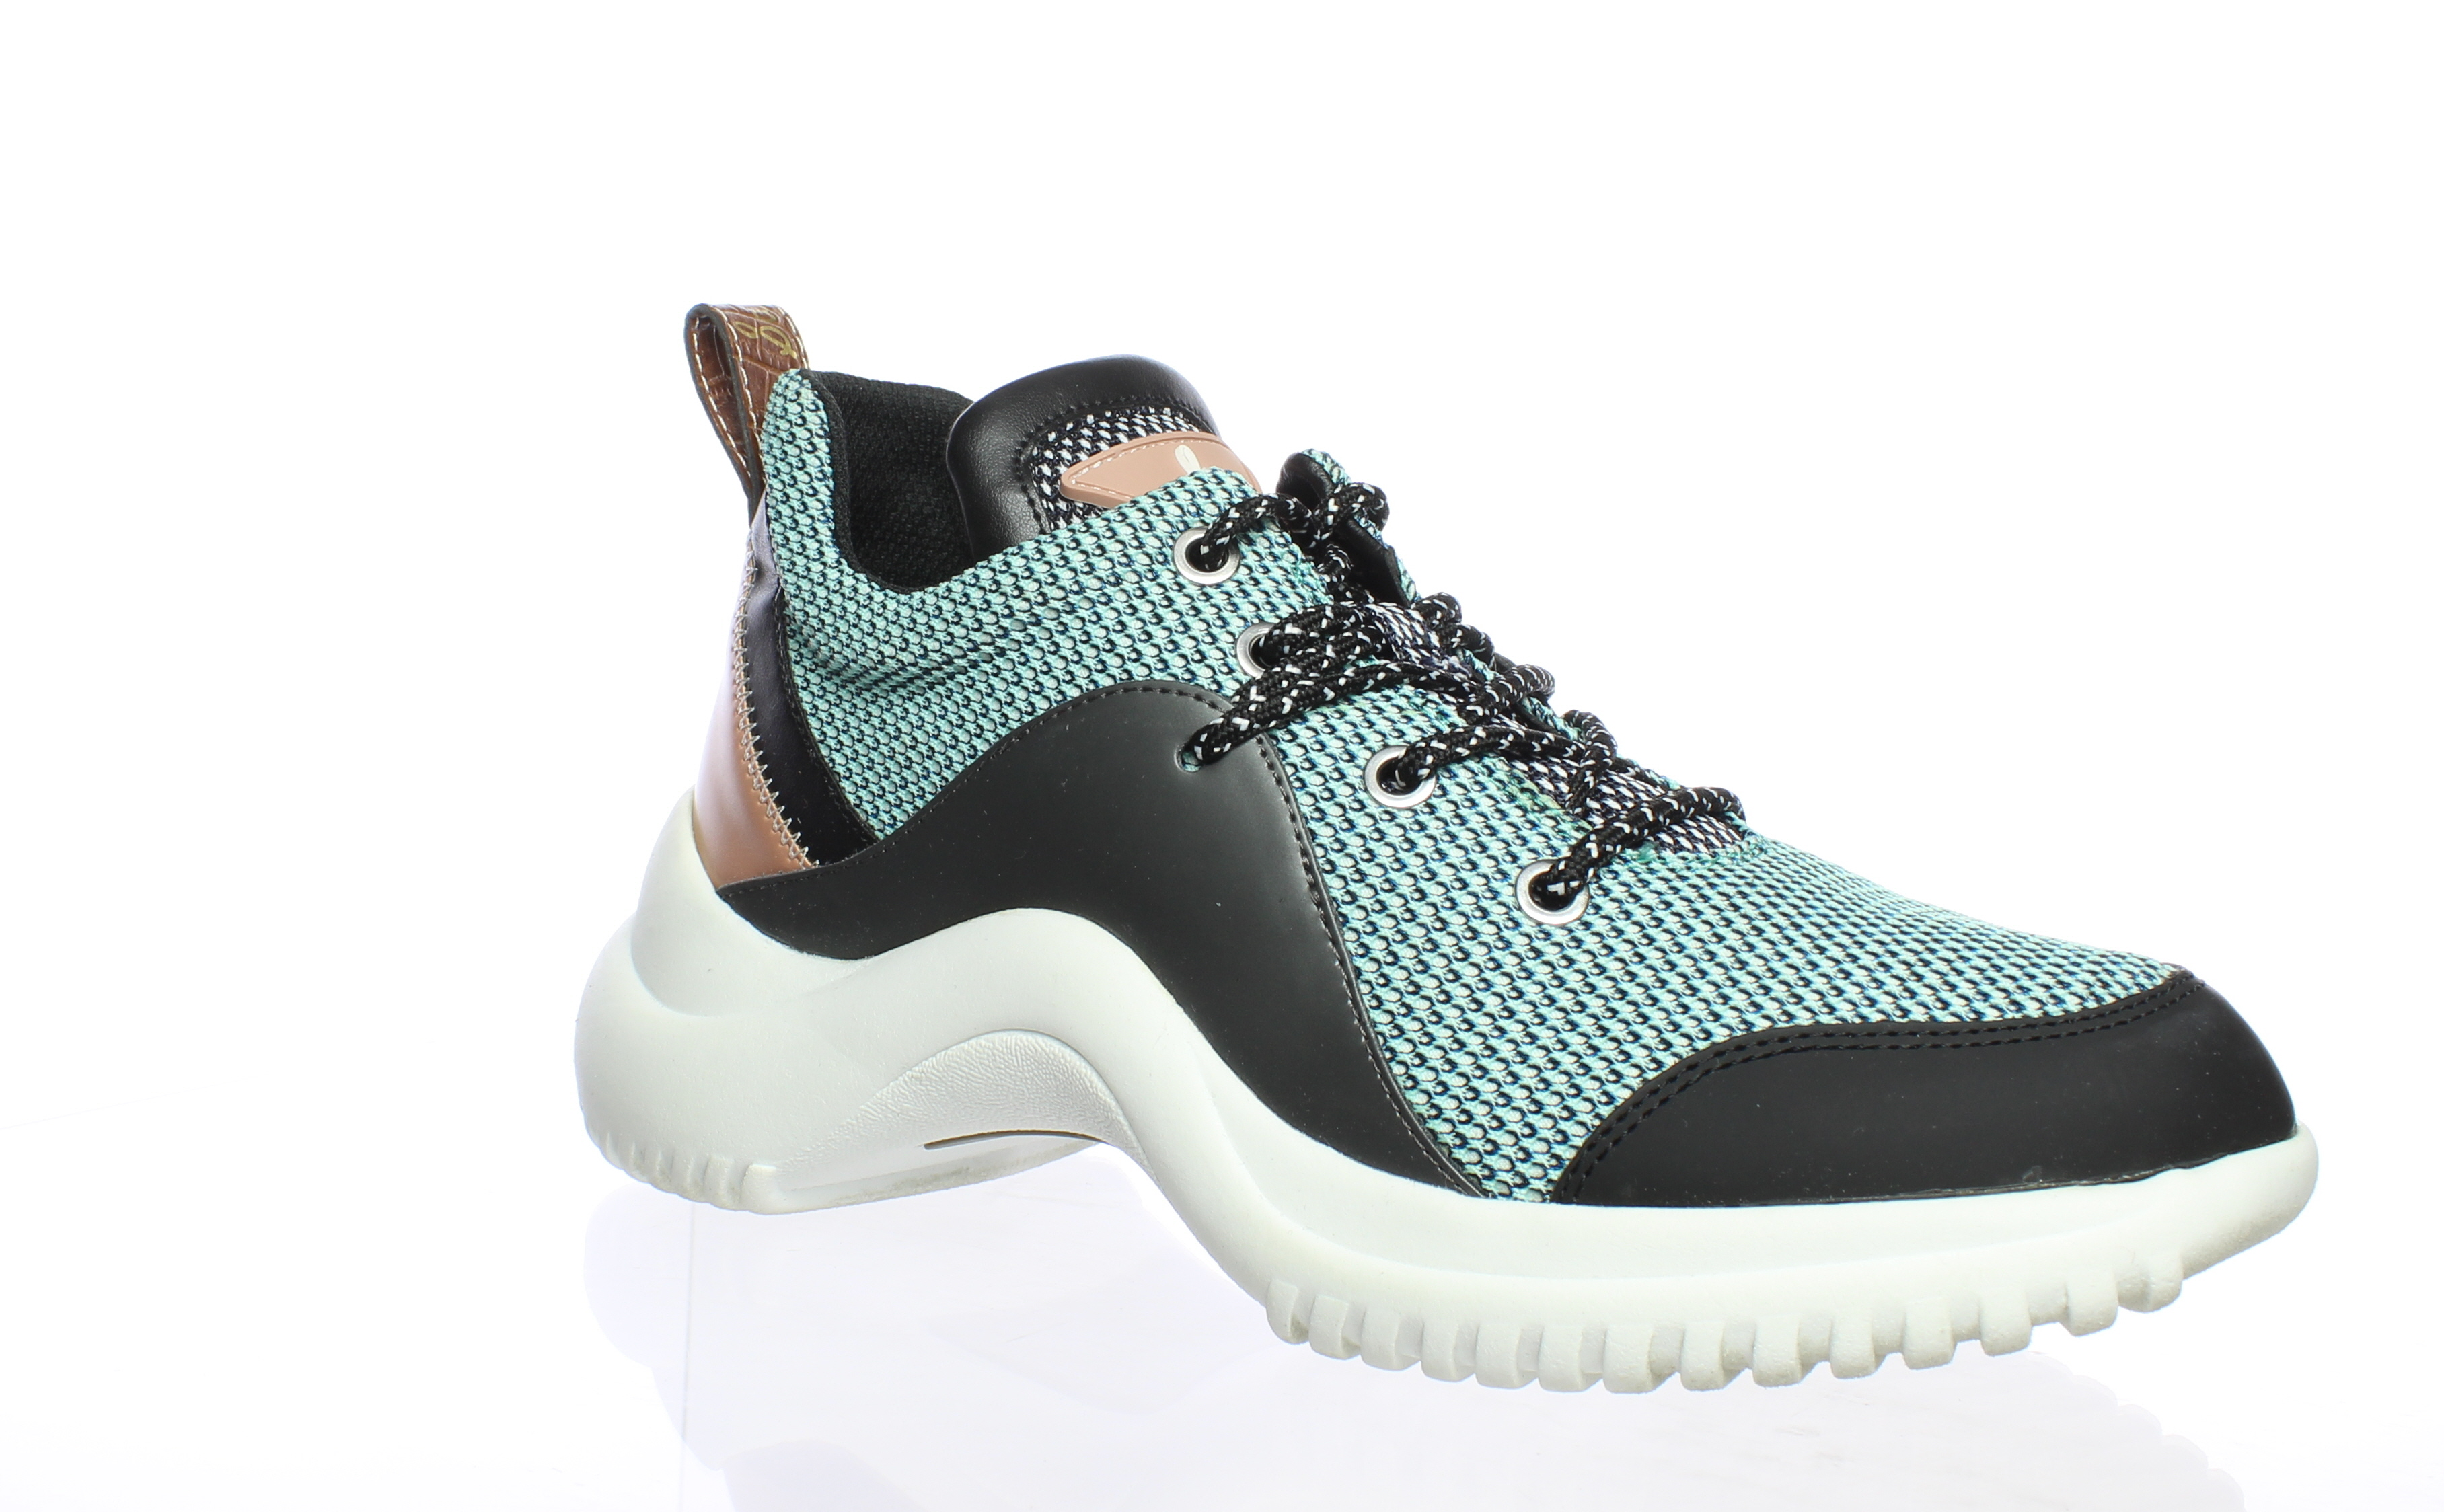 81526eb6119f Sam Edelman Womens Meena Mint Multi Fashion Sneaker Size 7.5 ...